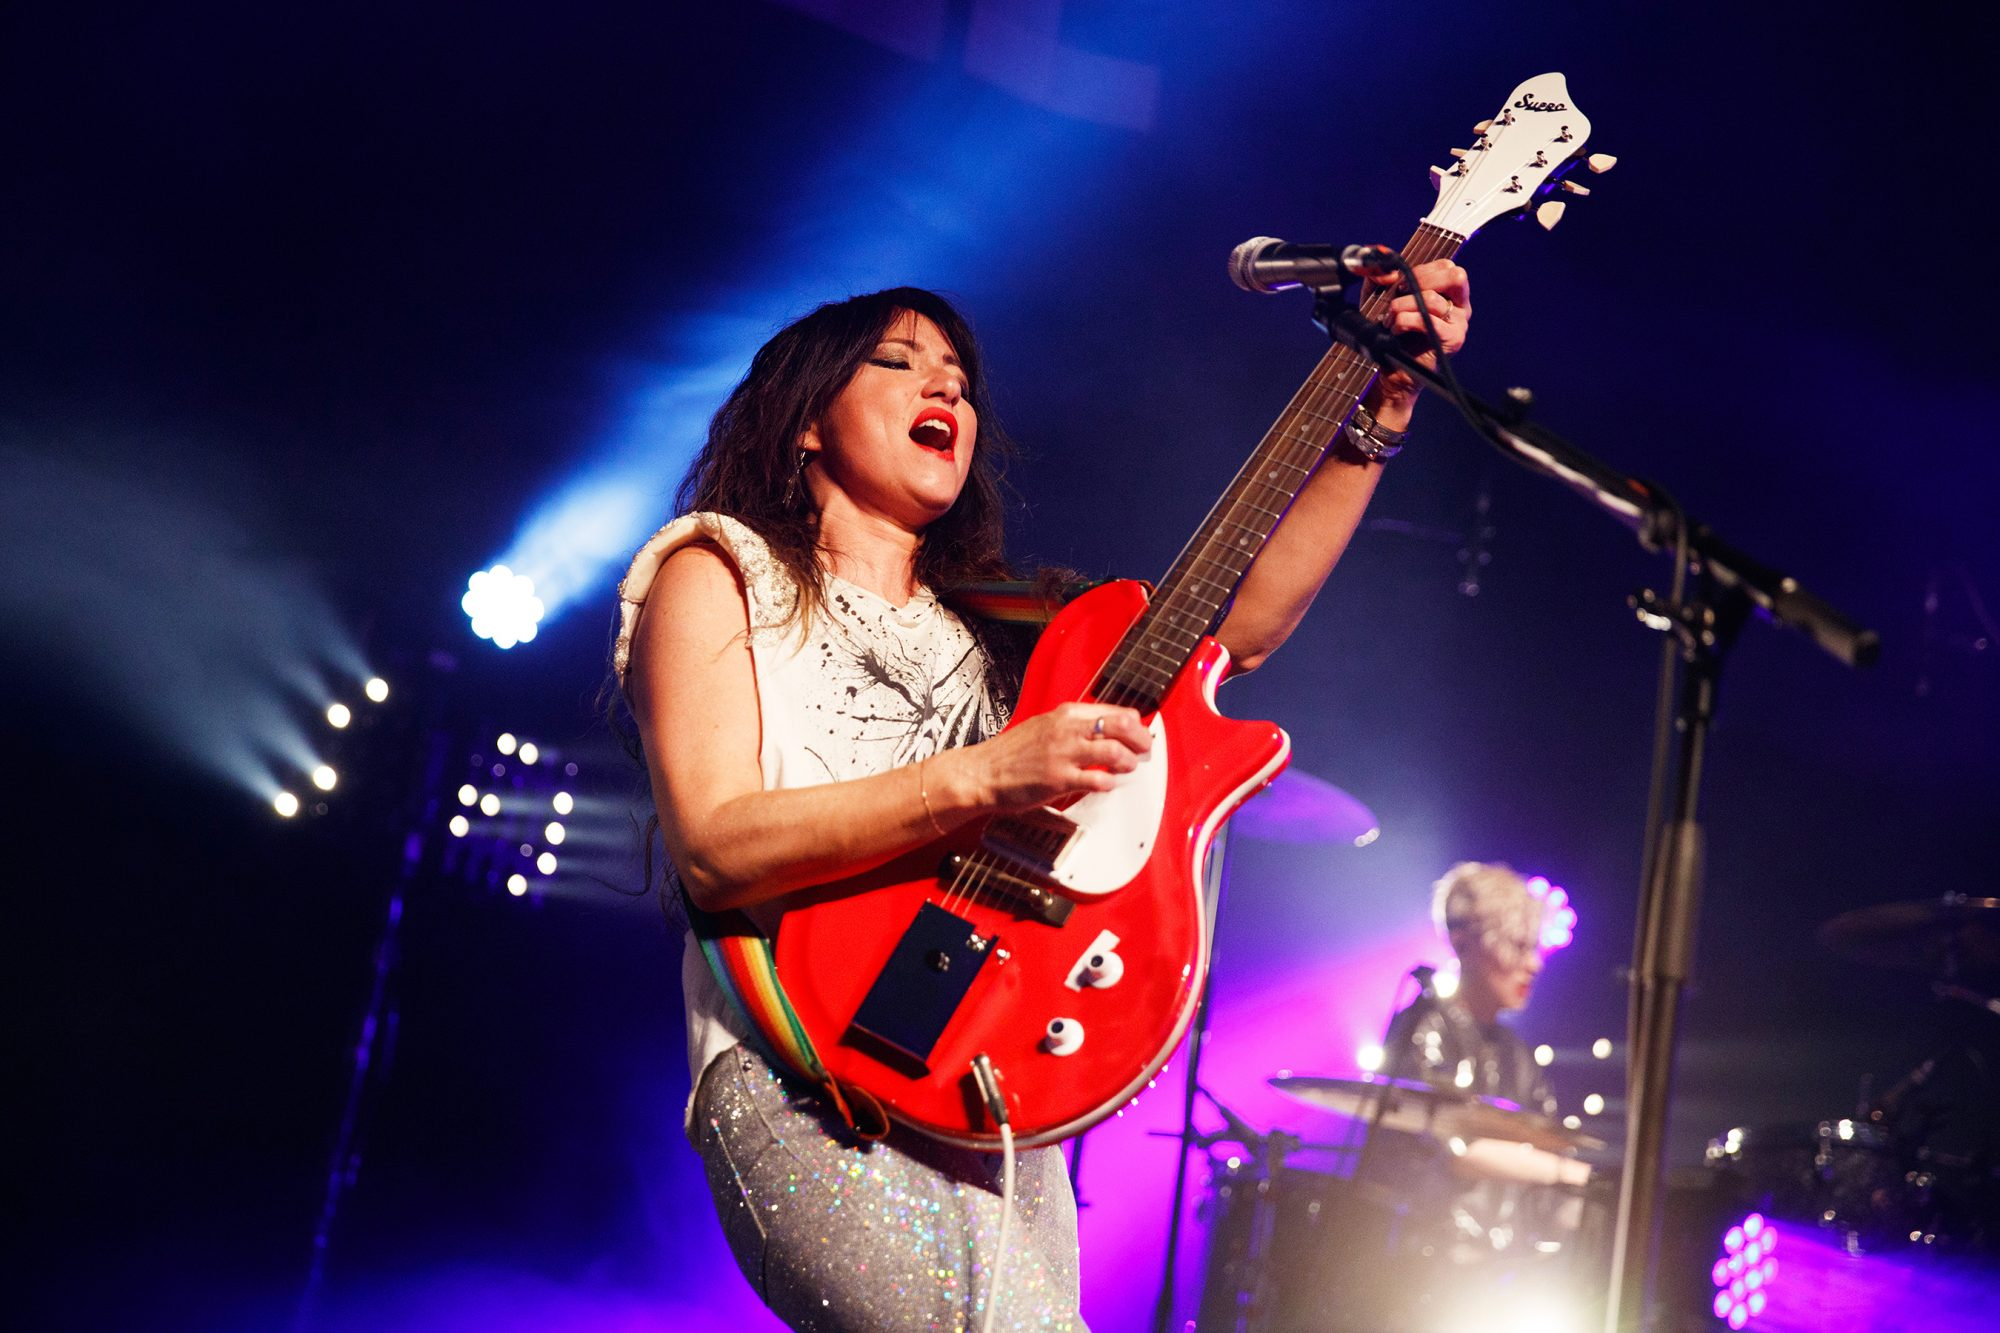 KT Tunstall Performs At The Roundhouse London